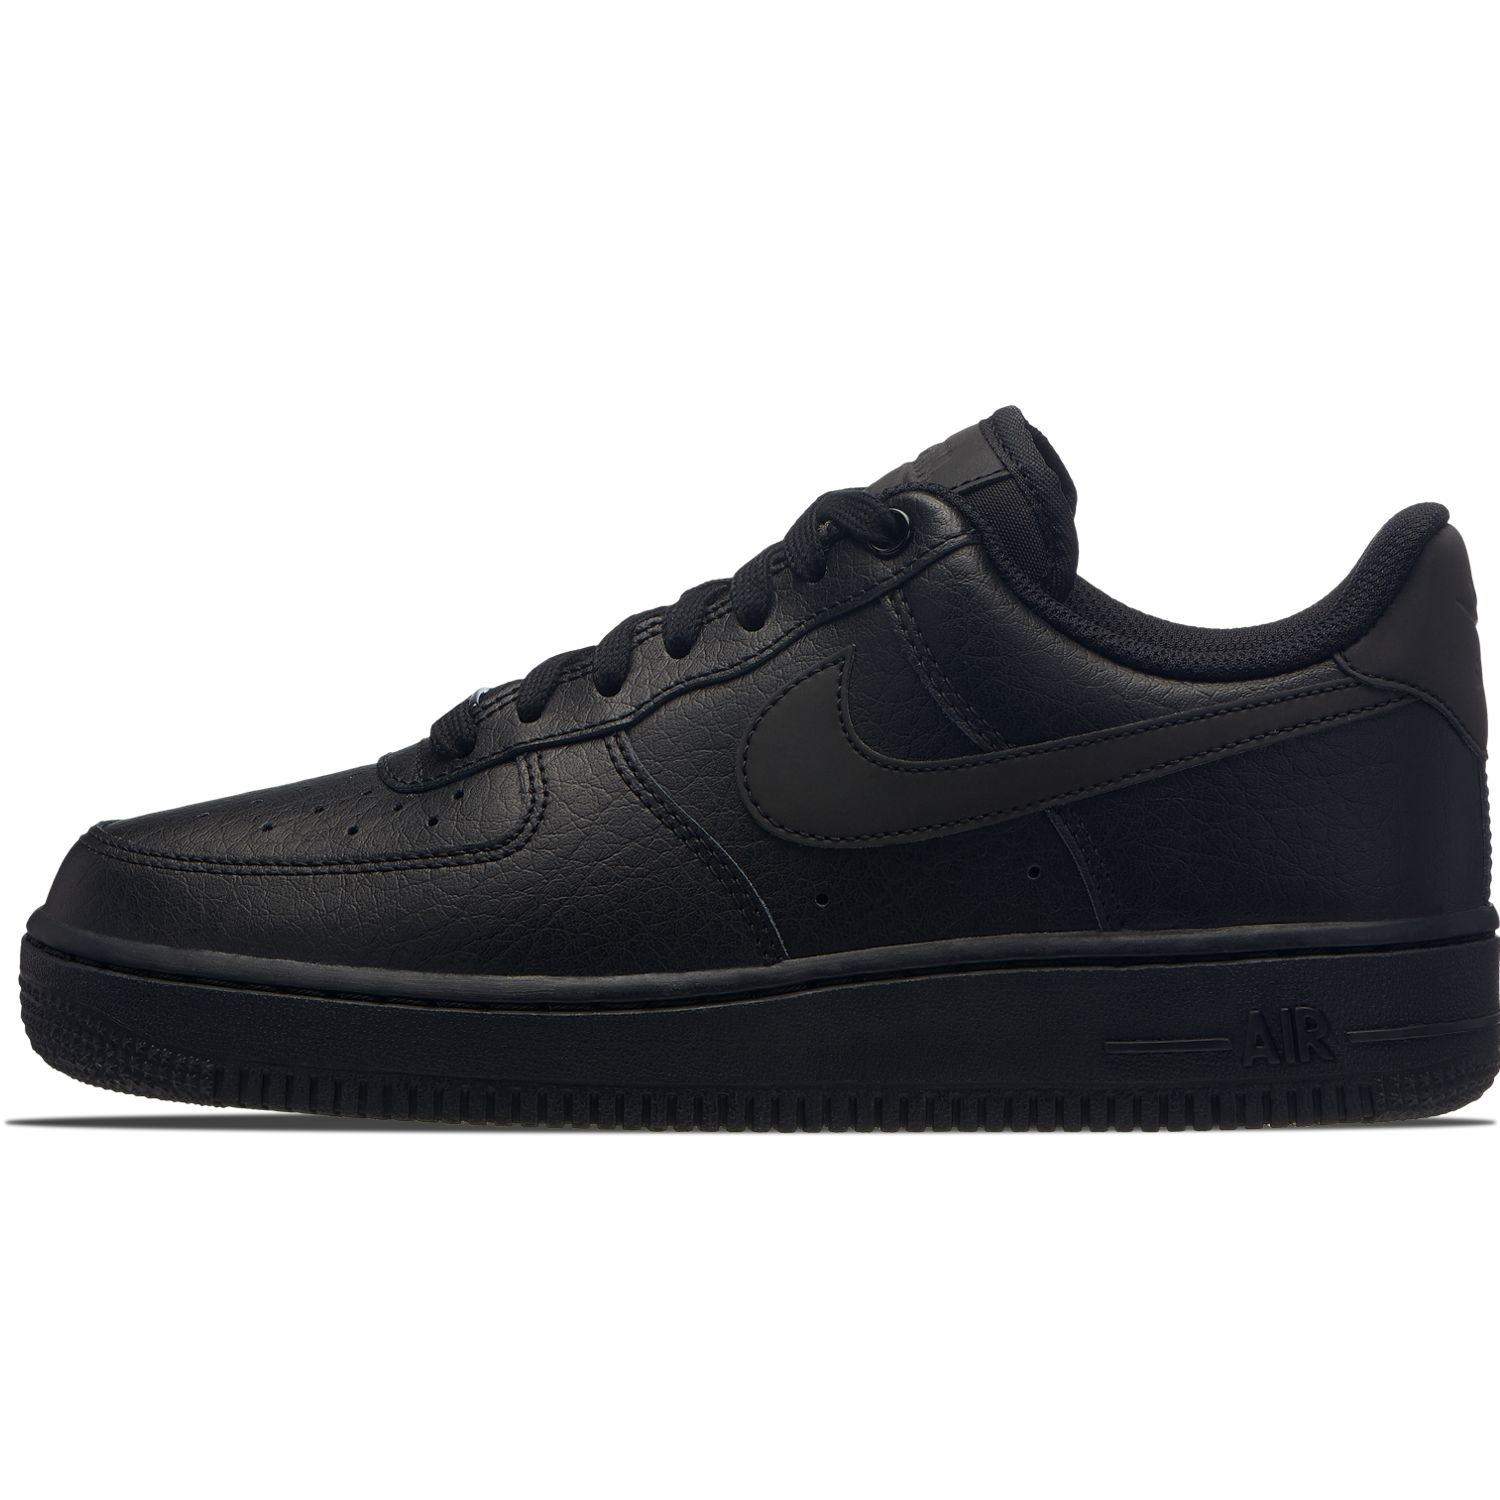 new concept 2f3eb 91d50 ... BUTY DAMSKIE NIKE AIR FORCE 1 07 ESSENTIAL AO2132-002 ...